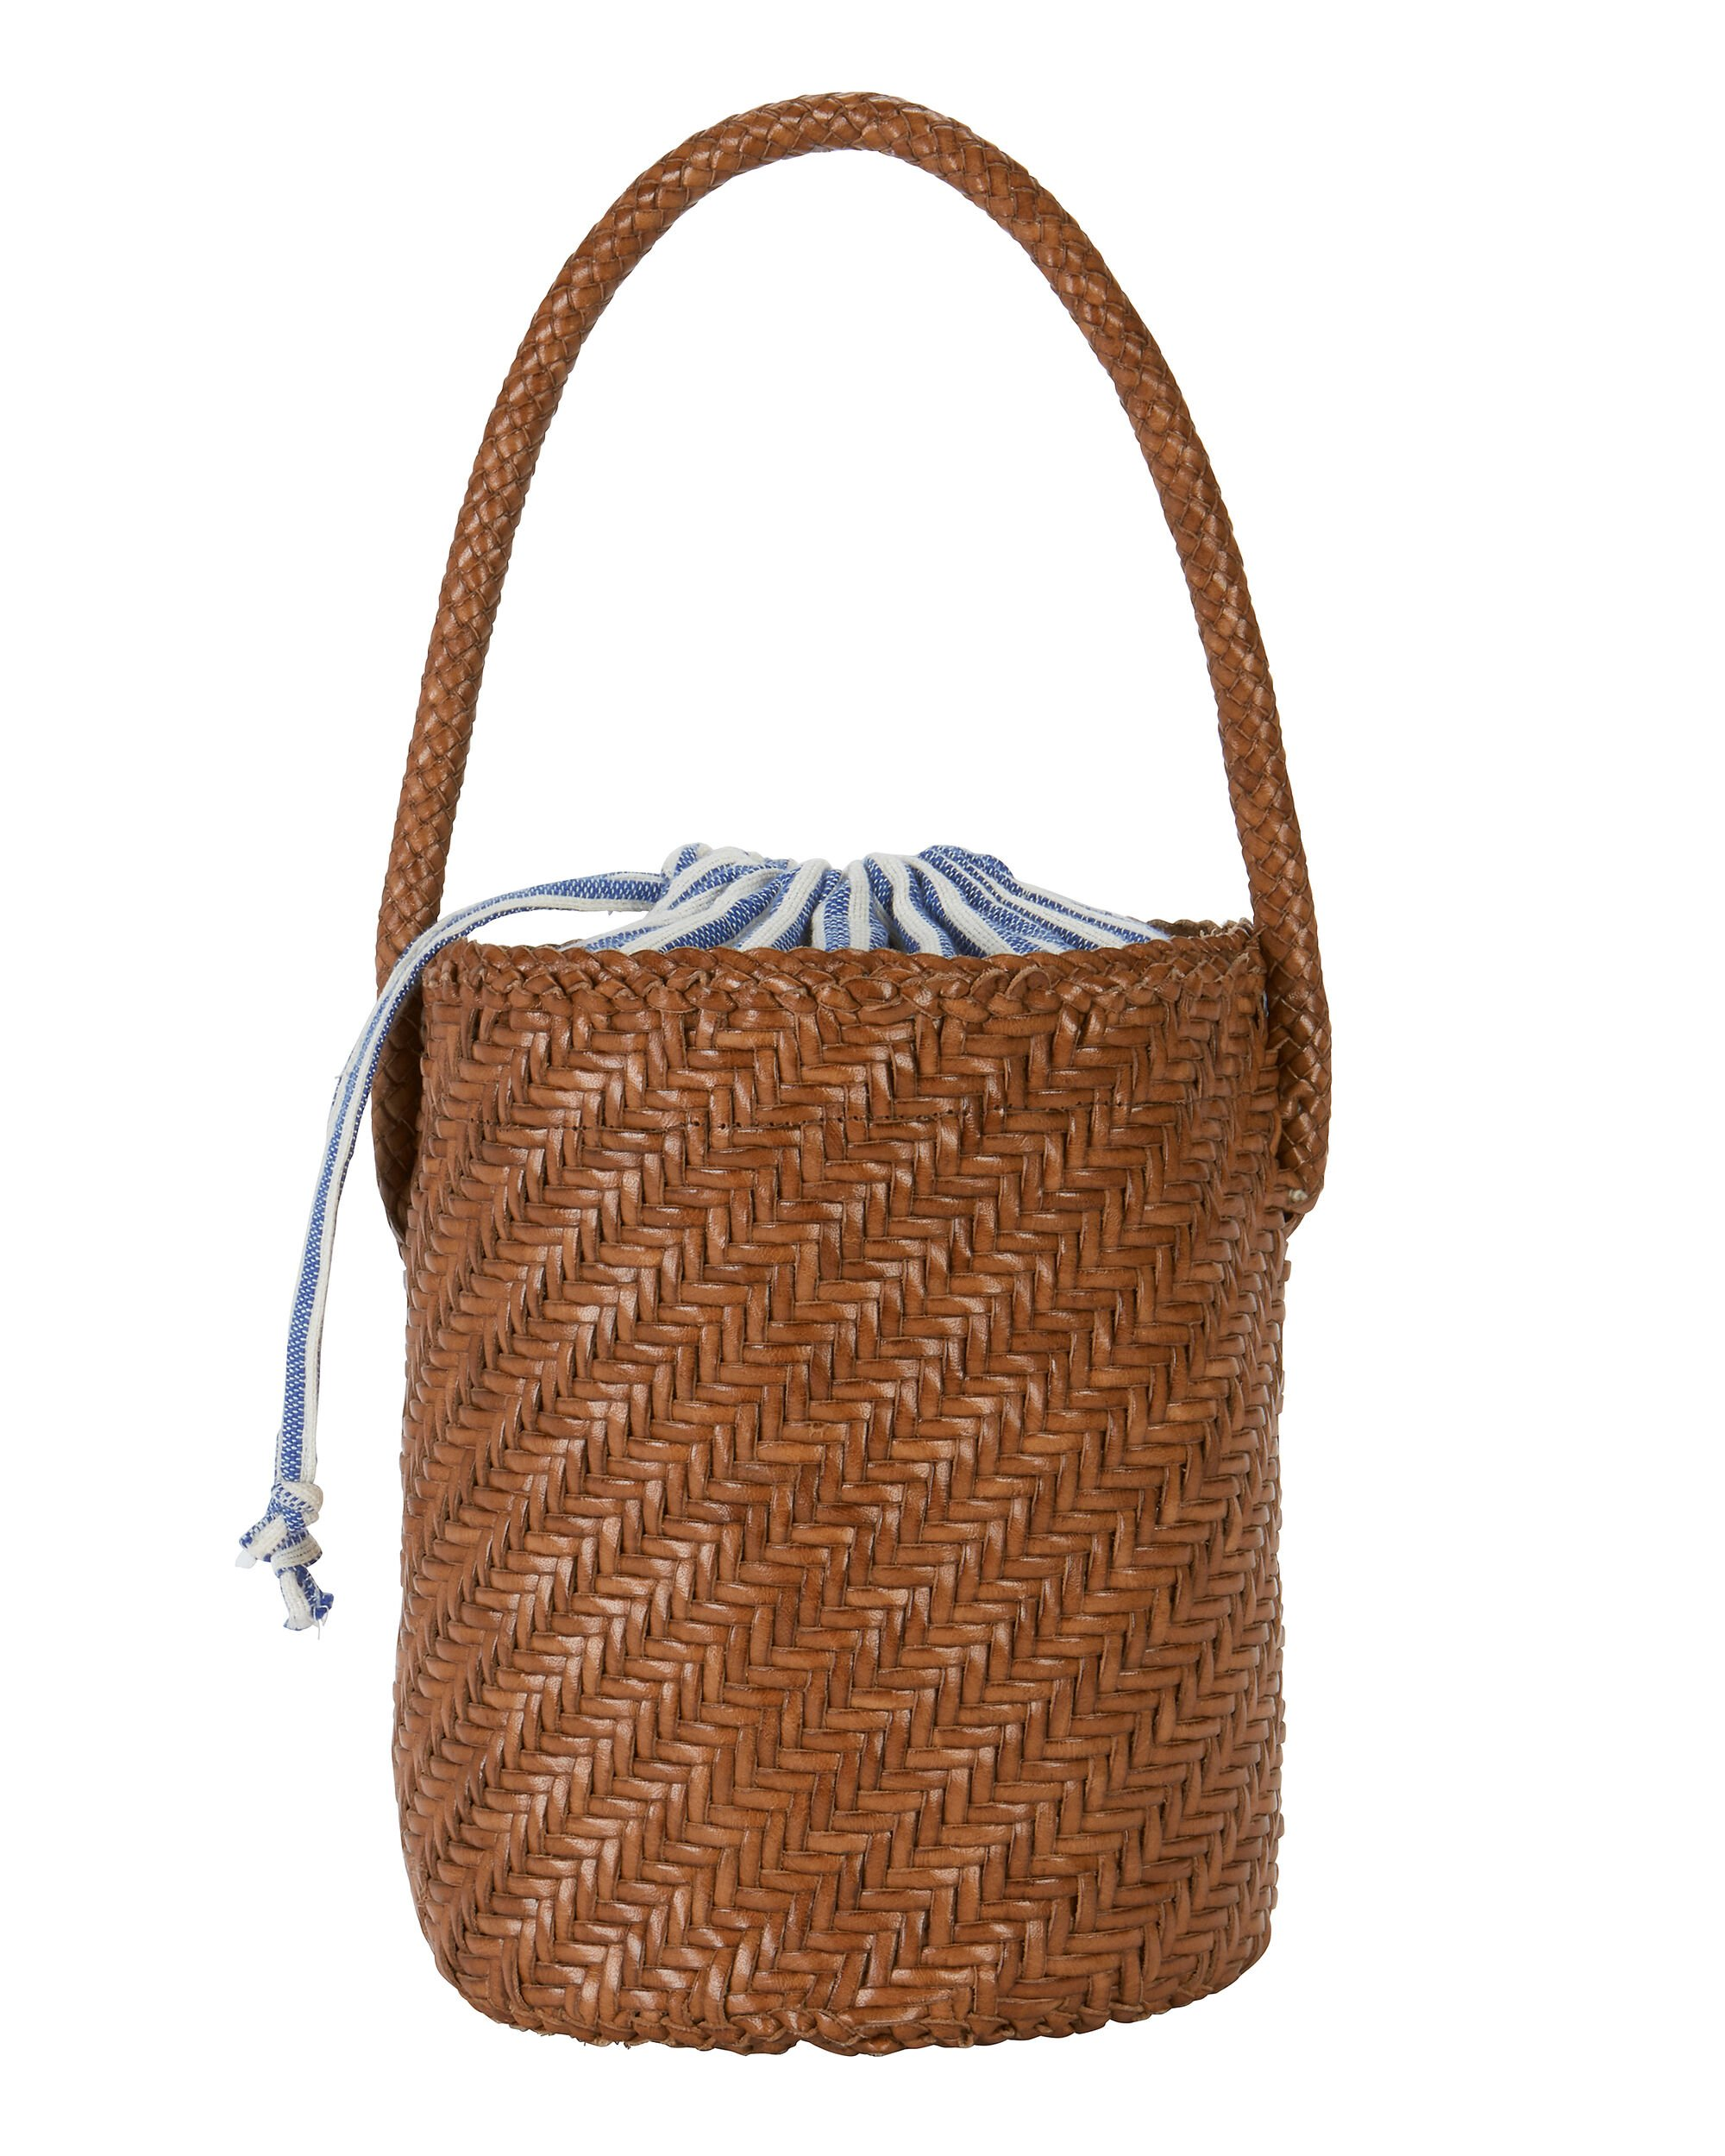 Cleo Woven Leather Bucket Bag - Brown, Tan